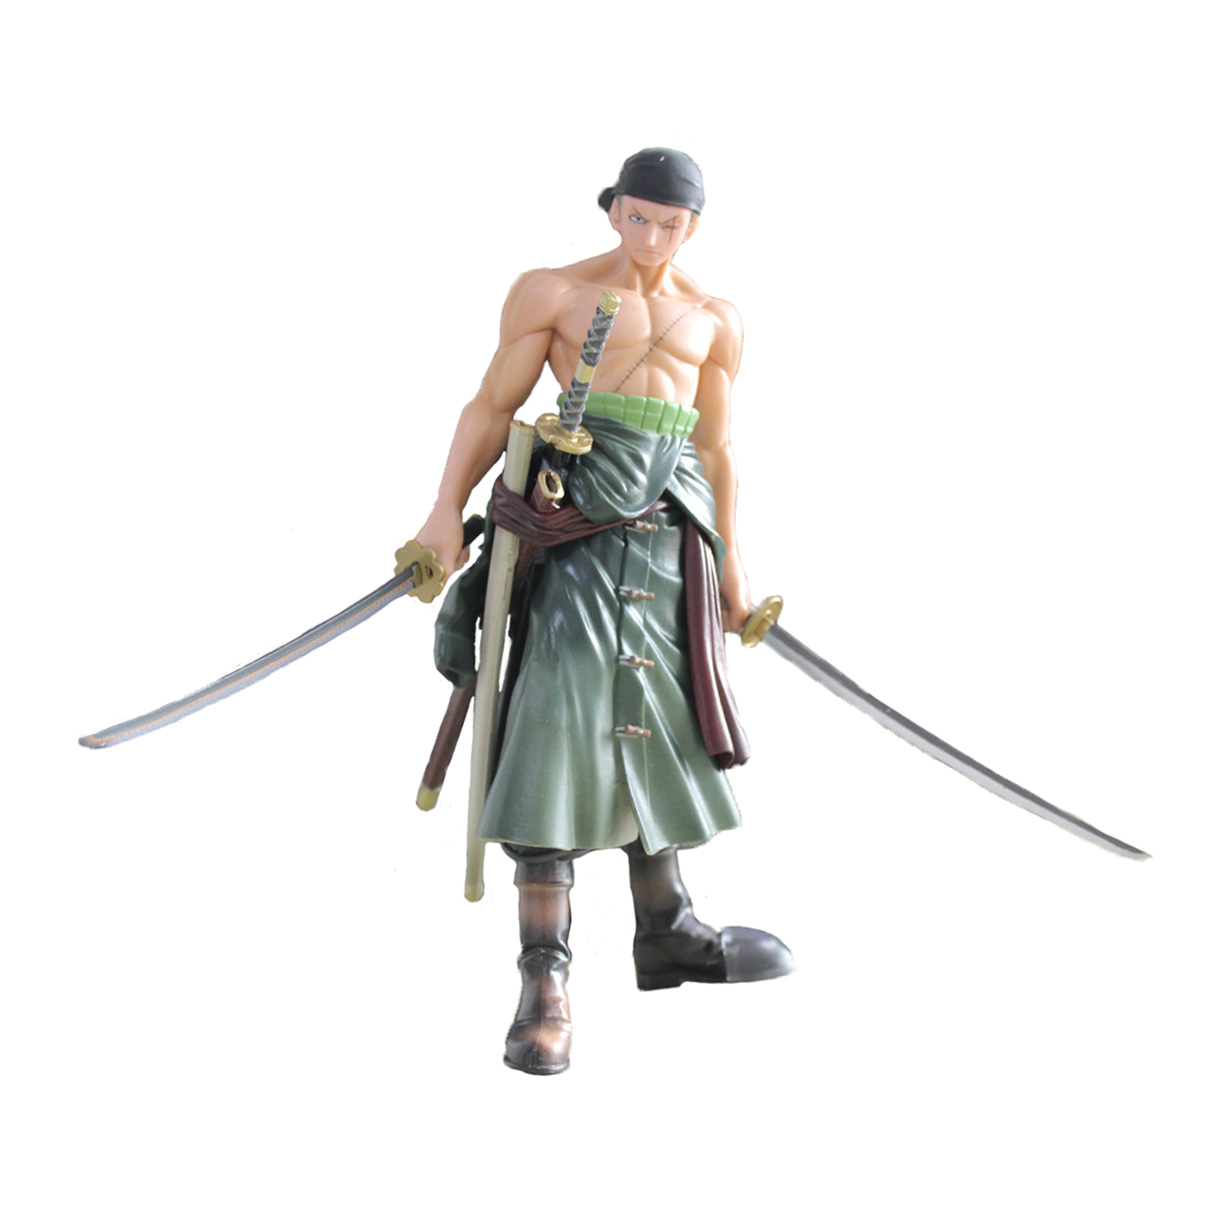 Chanycore One Piece New World  Anime Figuarts Zero Roronoa Zoro 29cm Action Figure PVC Boxed Limit Model Garage Kits Kids Toys brand new portrait of pirates one piece roronoa zoro 23cm pvc cool cartoon action figure model toy for gift kids free shipping